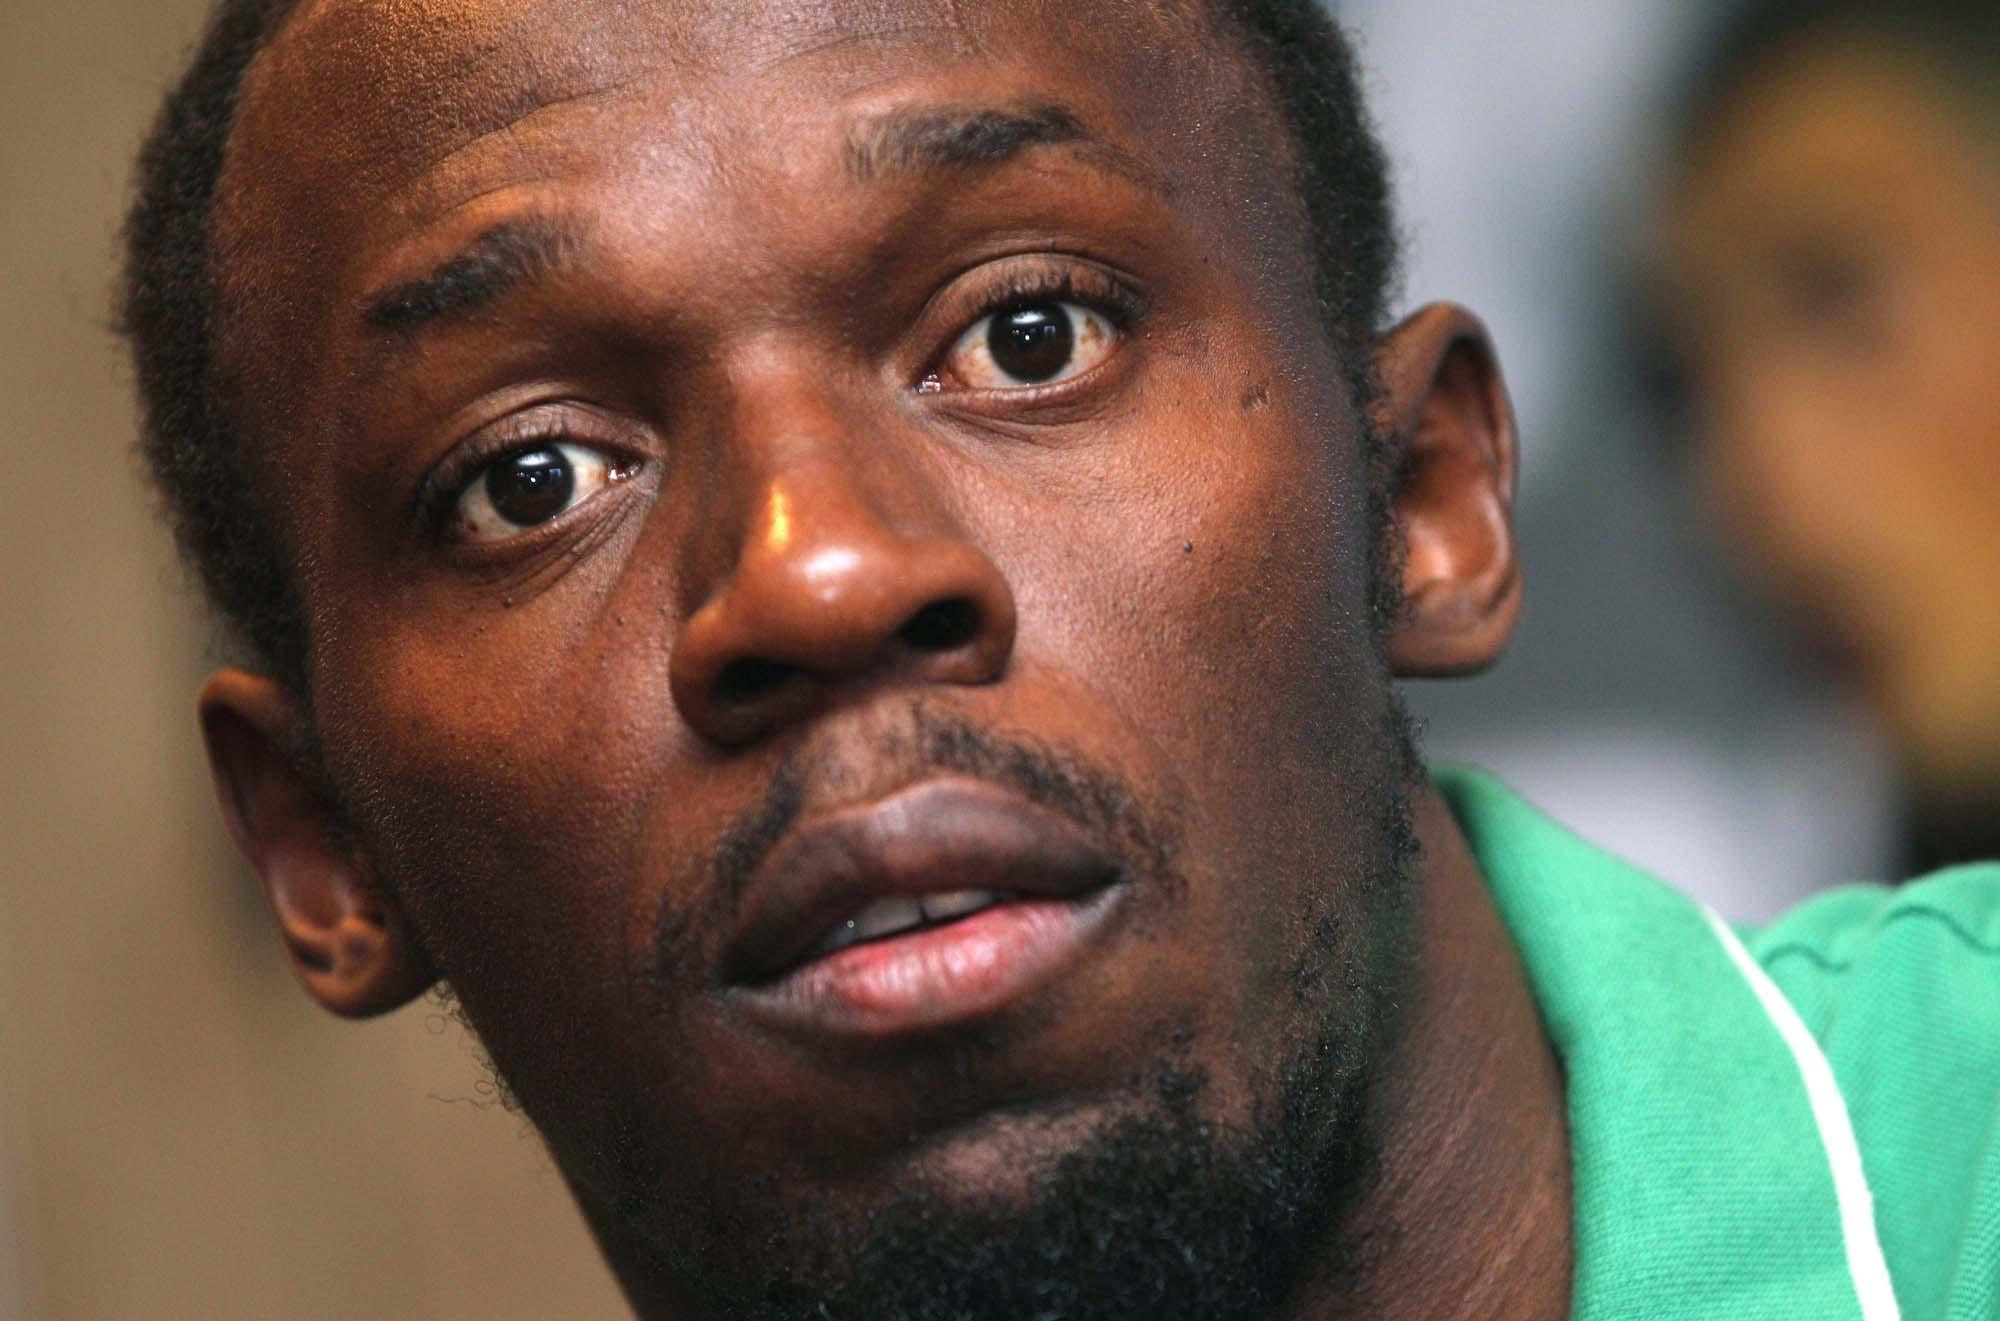 Athlete Usain Bolt of Jamaica addresses the media at the Sheraton hotel in Brussels on Wednesday, Sept. 4, 2013. Bolt arrived in Brussels to participate in the Diamond League Memorial Van Damme Track and Field meeting on Friday. (AP Photo/Yves Logghe)